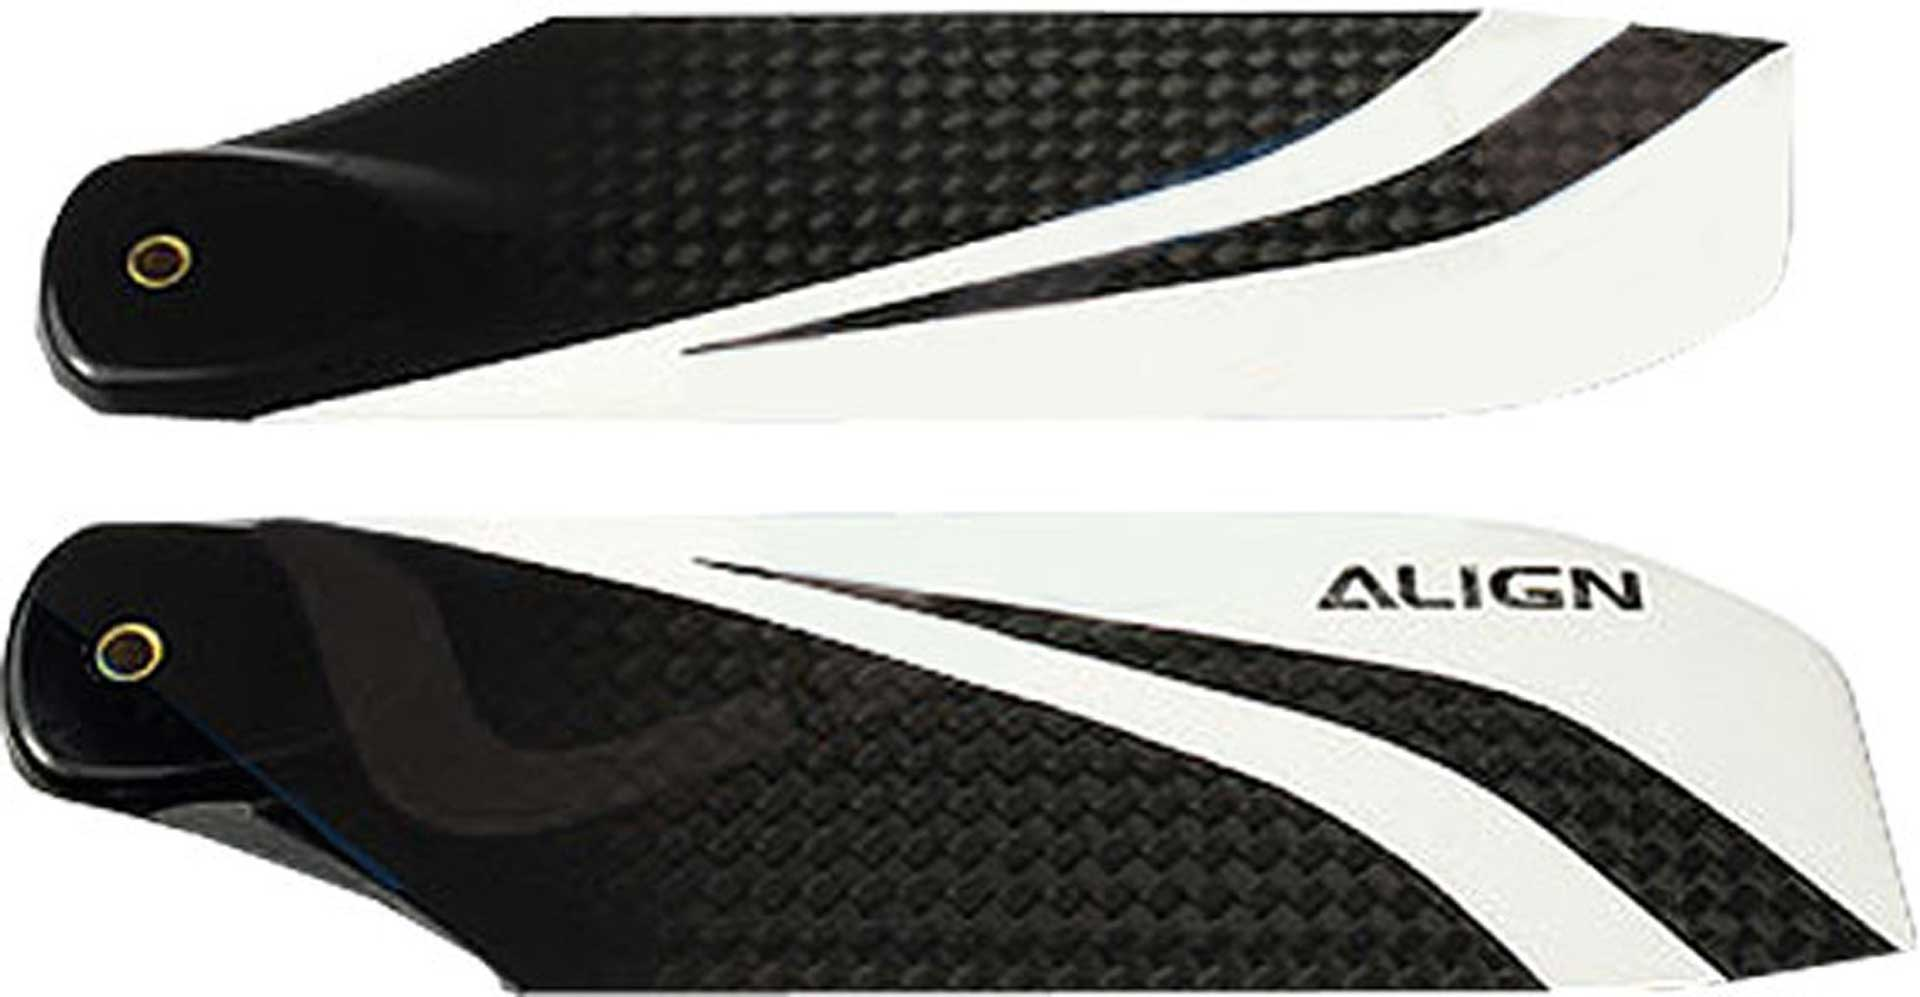 ALIGN TAIL ROTOR BLADES 106MM CARBON